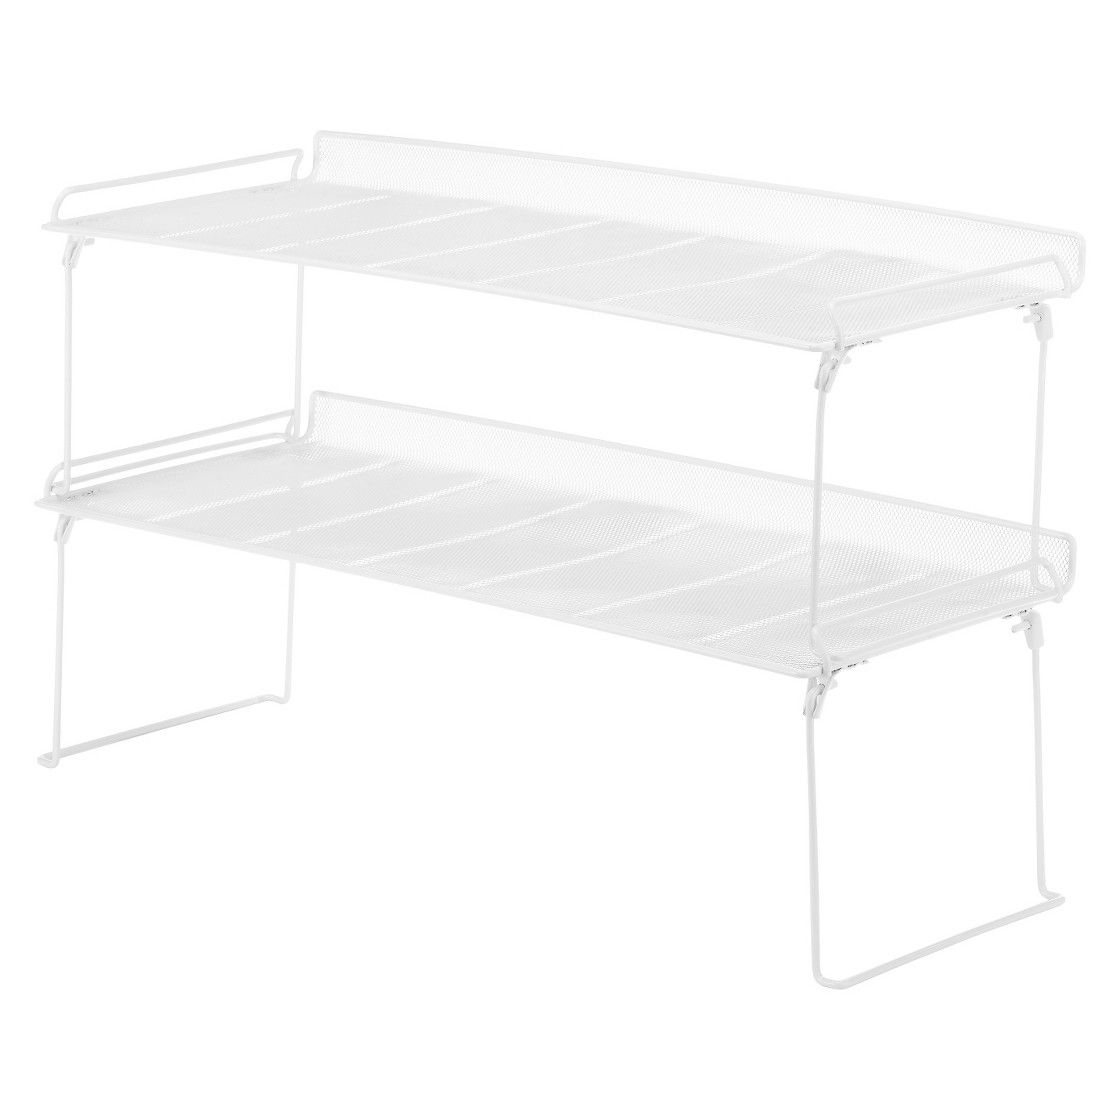 Metal Mesh Stacking Shelf - White - Room Essentials™ | Metals ...